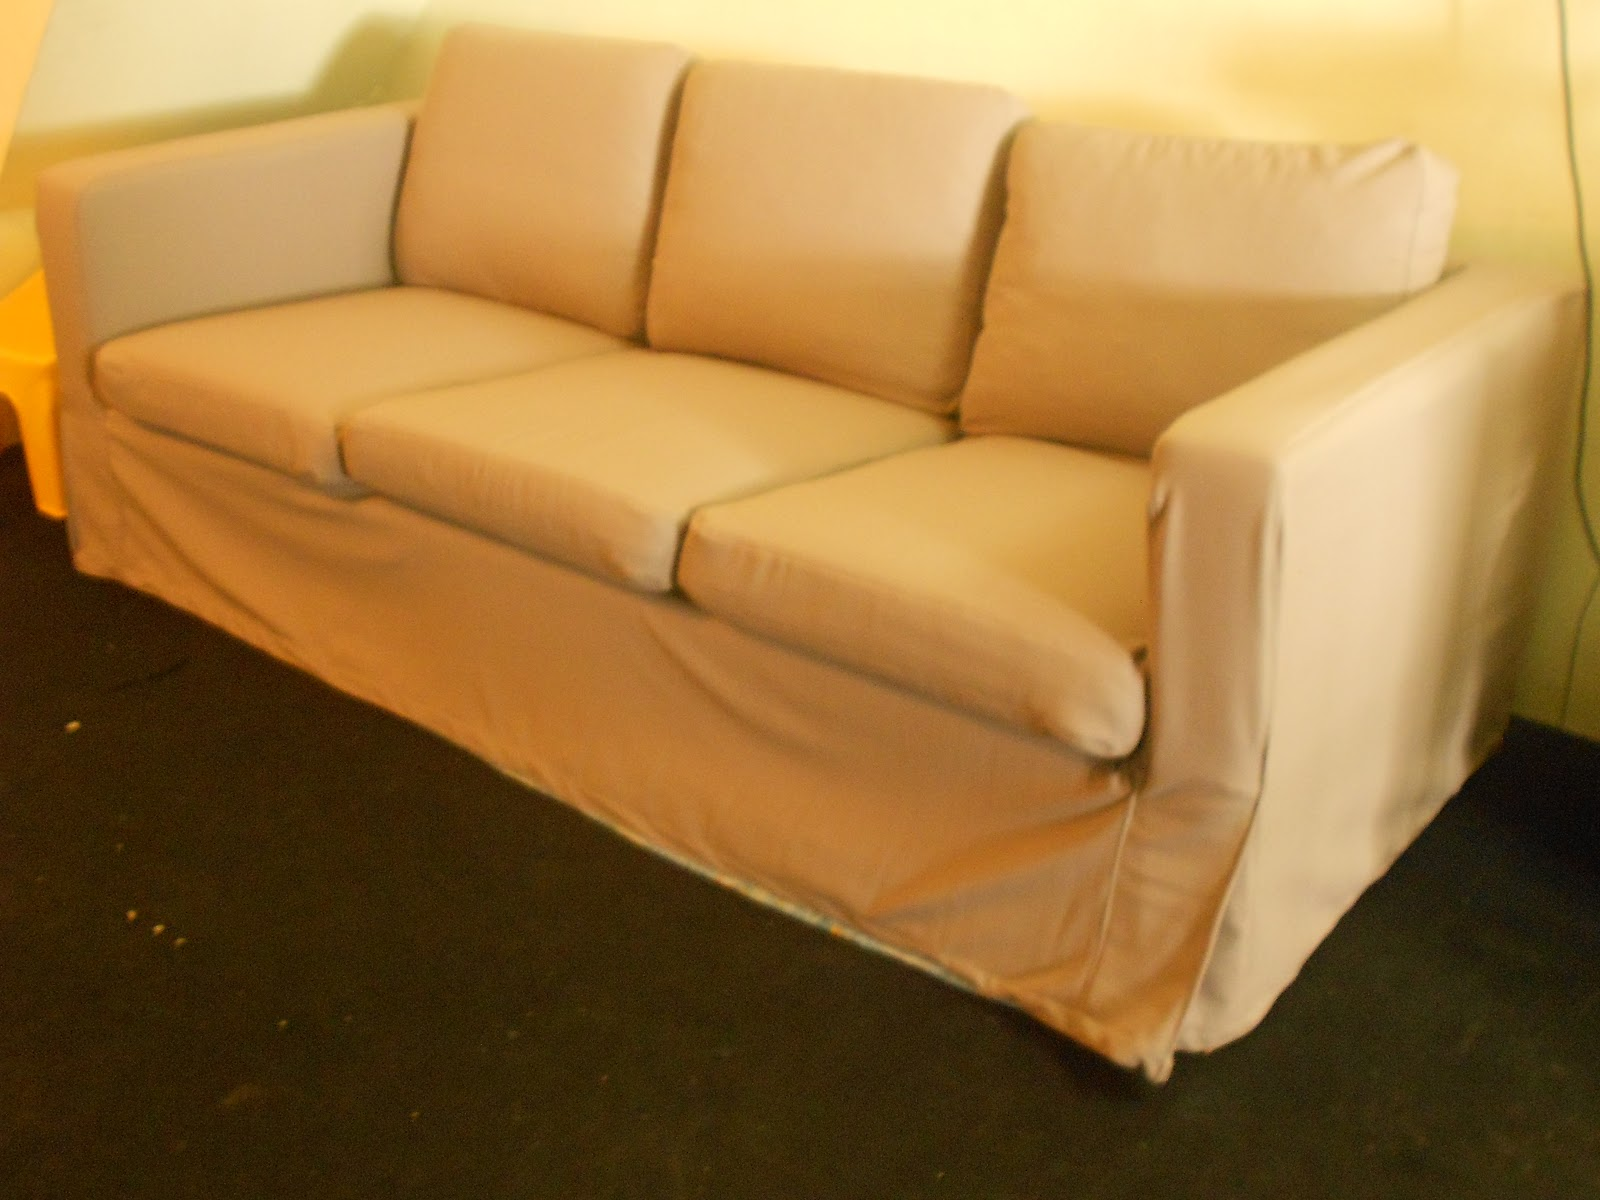 How Much Fabric To Cover A Sectional Sofa Recliner Yuhmico: Diy - Slip